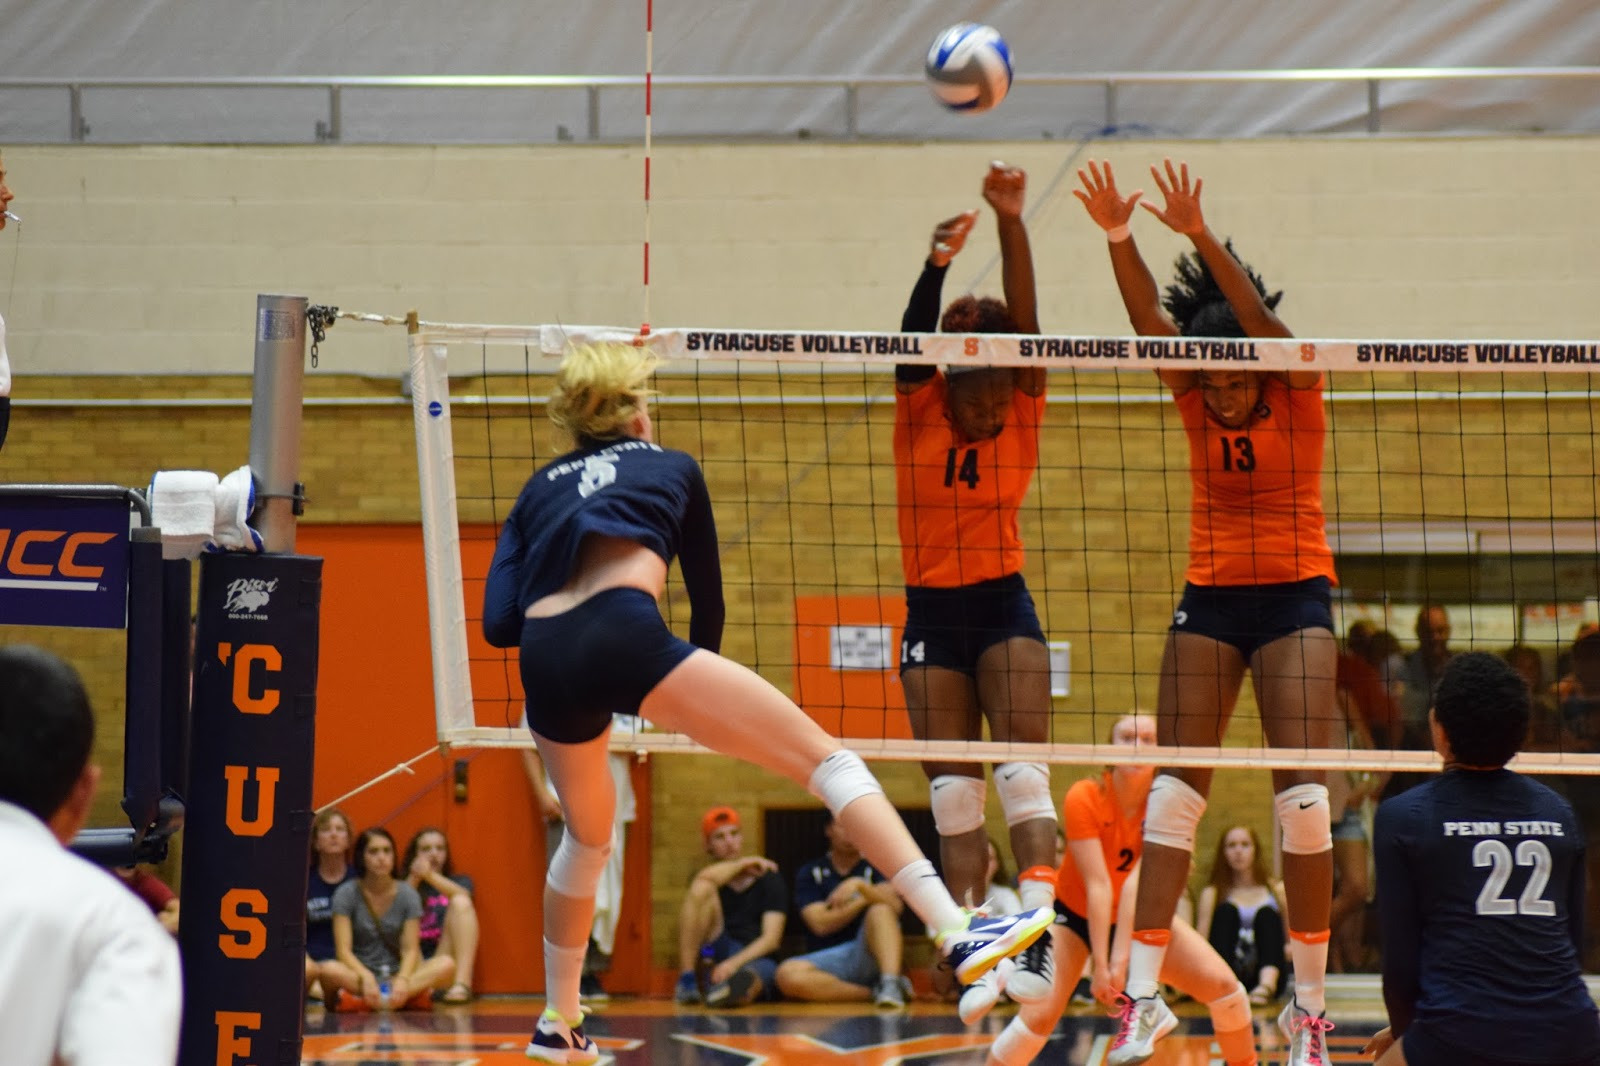 Volleyball: Penn State Sweeps Orange to Win Syracuse Tournament